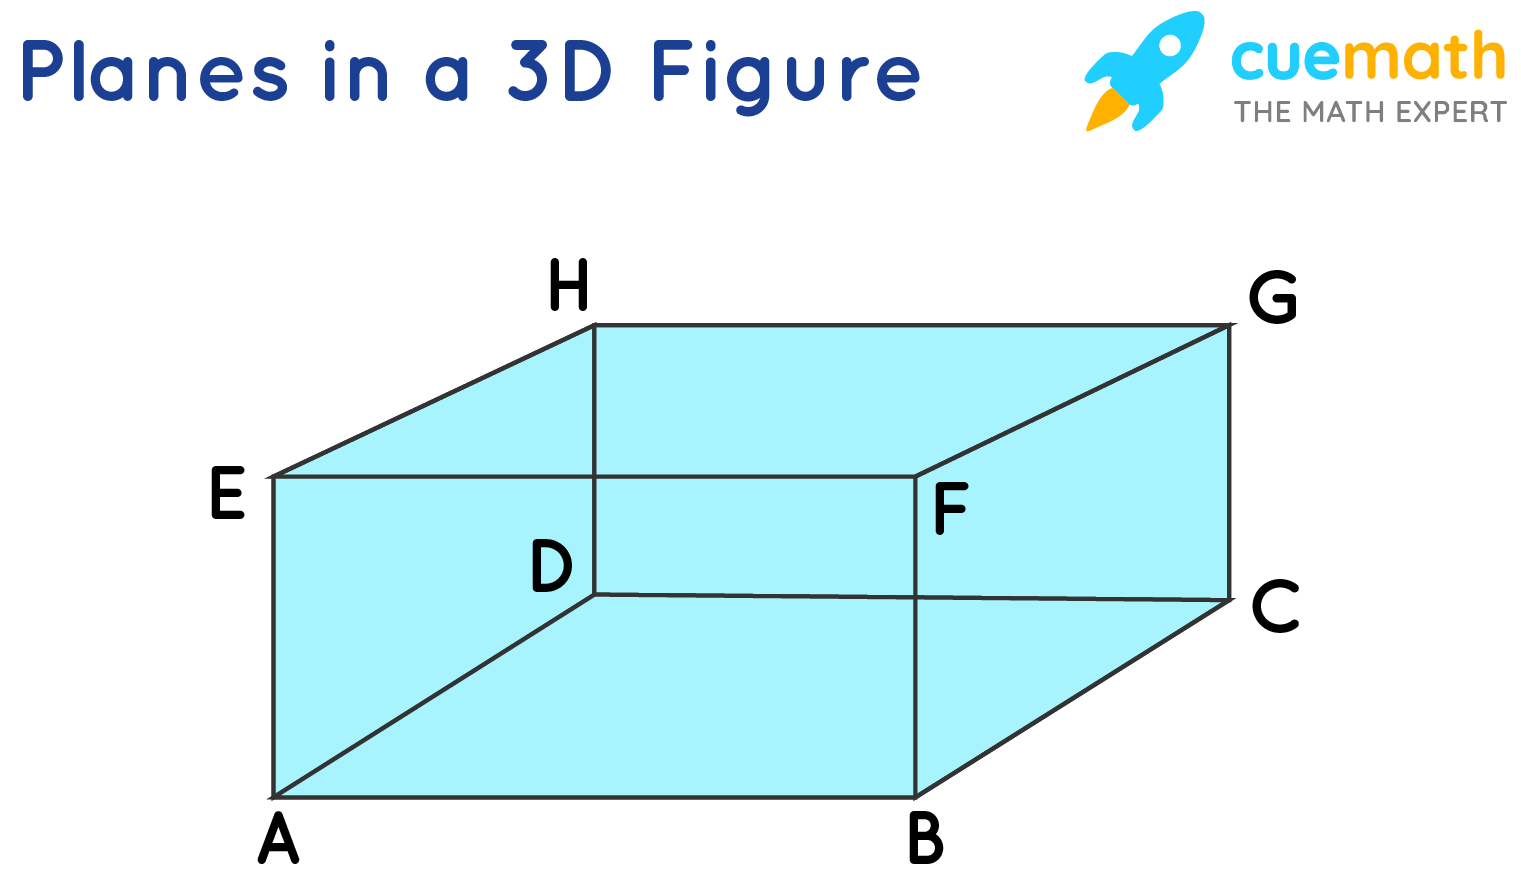 Planes in a 3D Figure